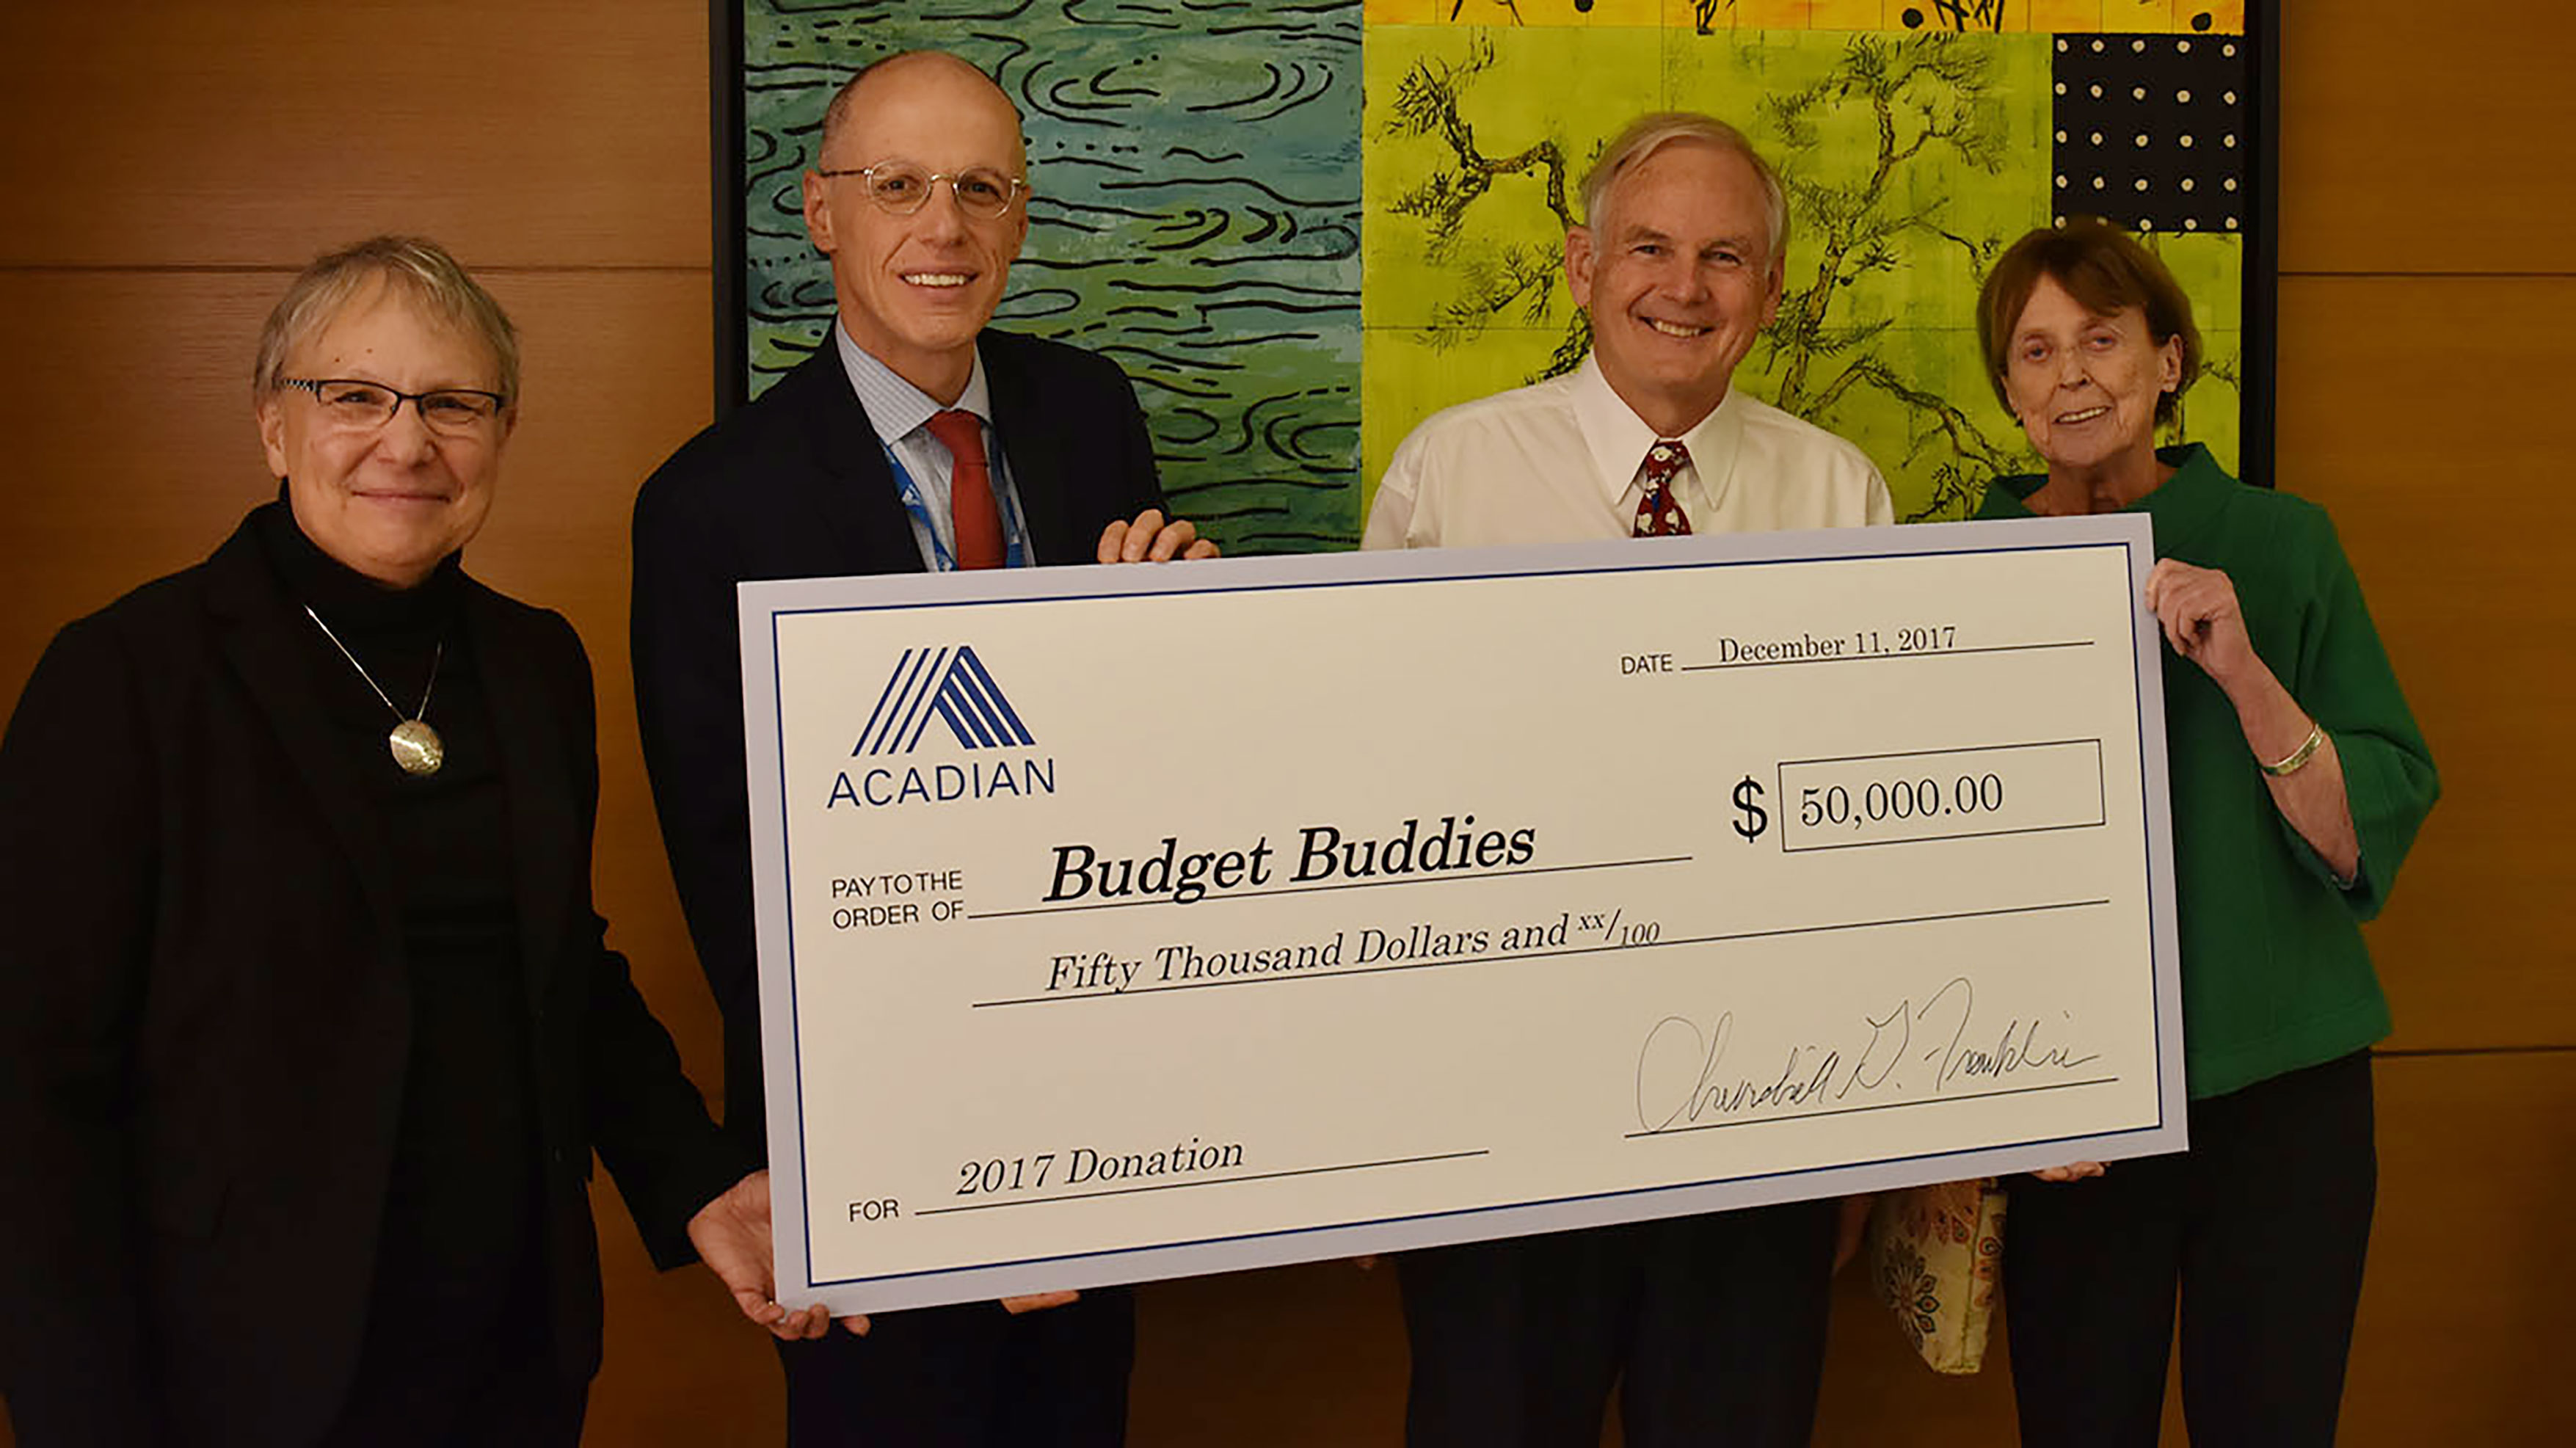 Acadian presenting donation to Budget Buddies